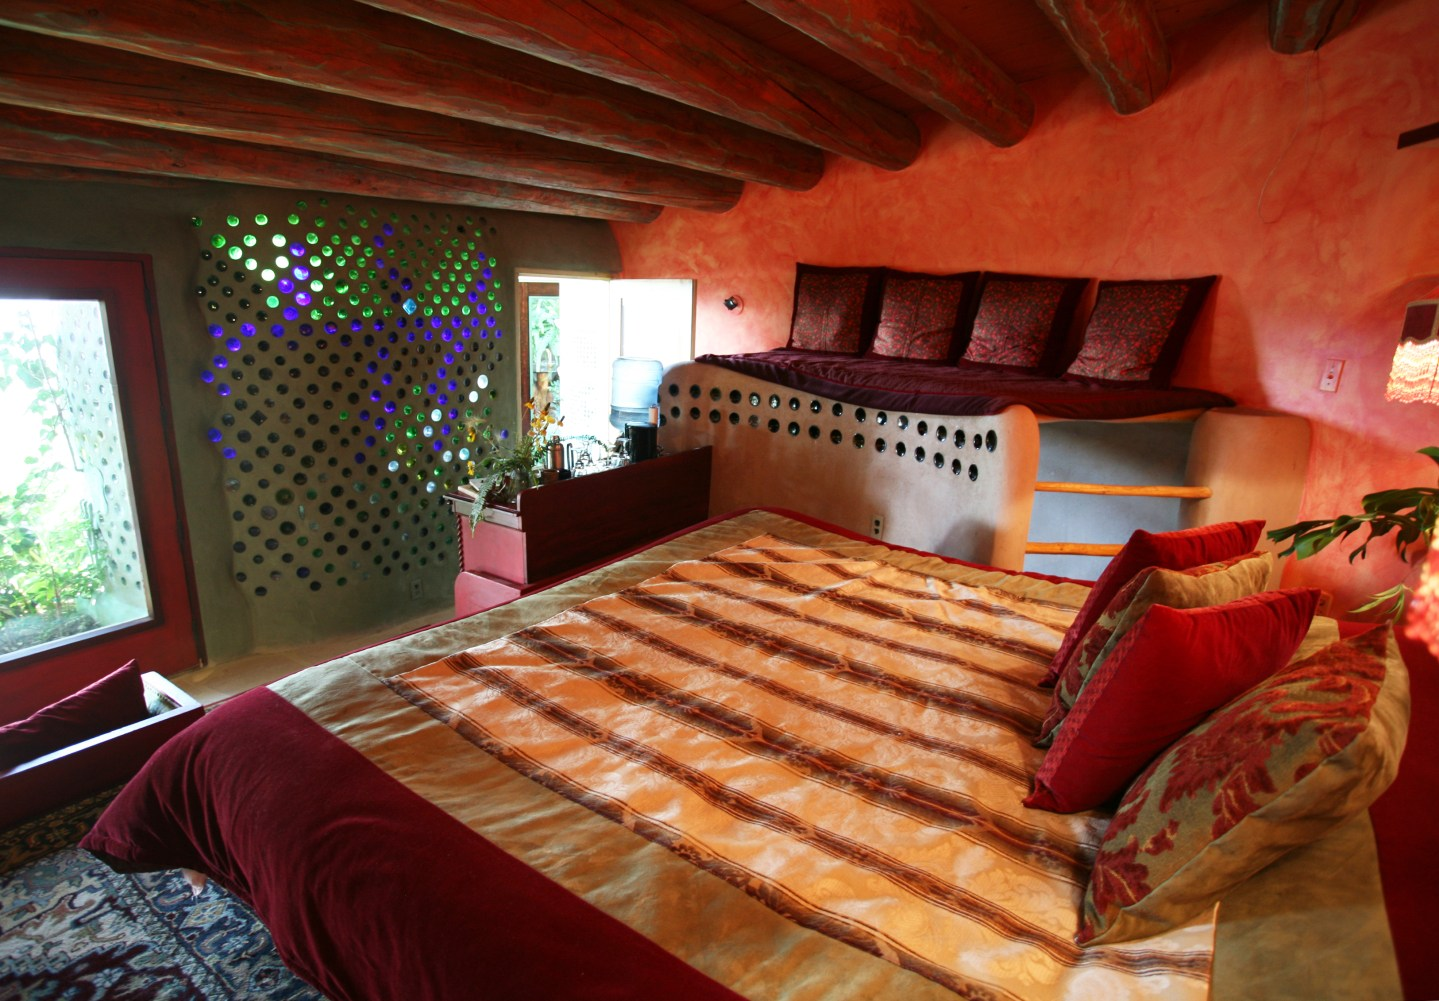 7.Earthship Rentals, Taos, New Mexico, USA